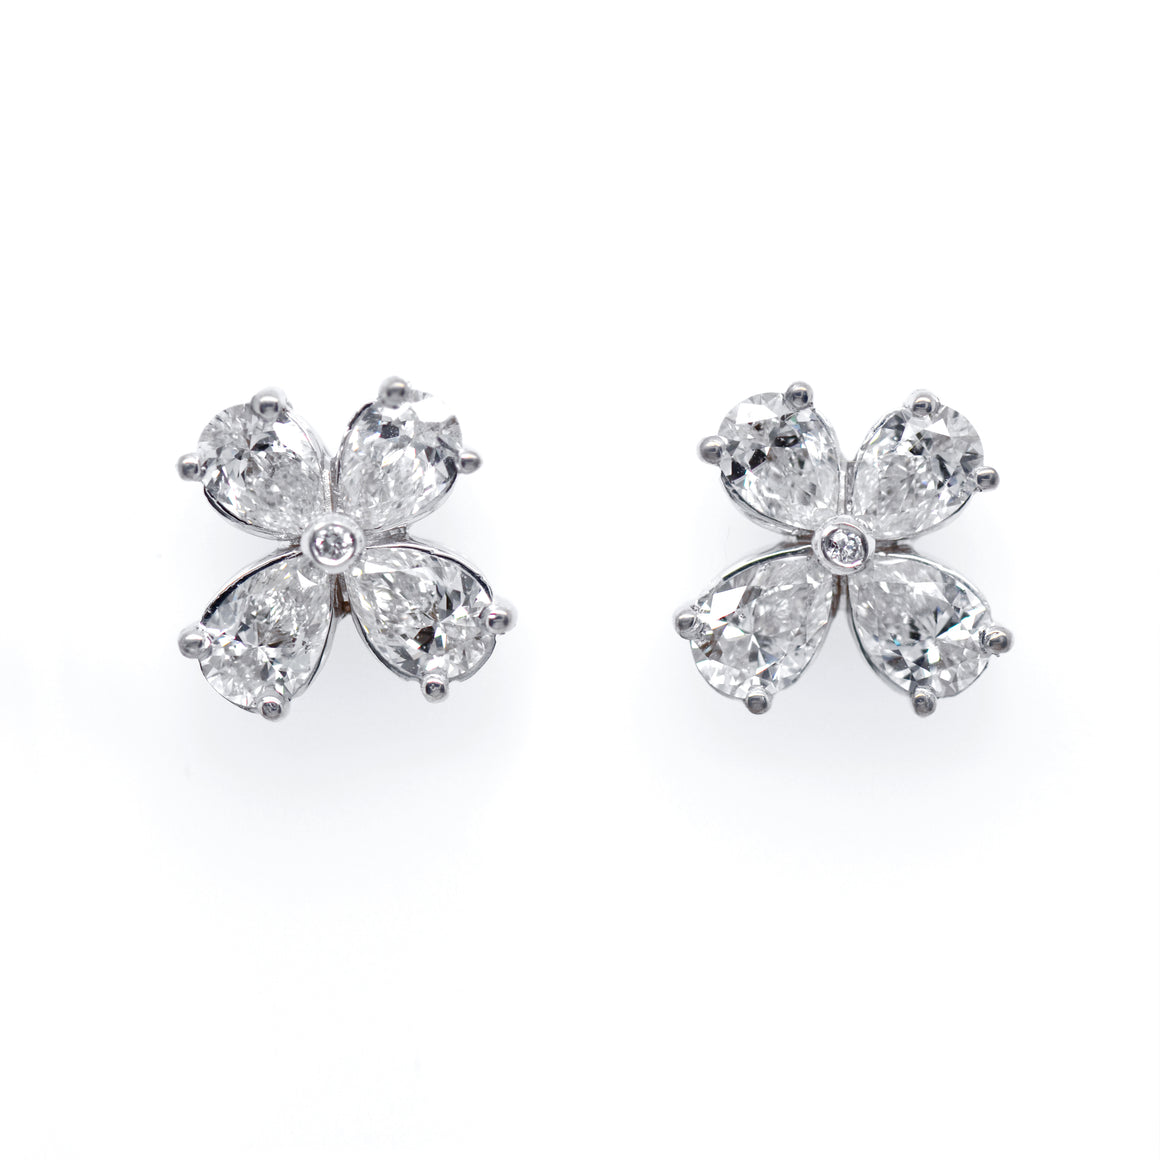 18K White Gold Diamond Clover Stud Earrings